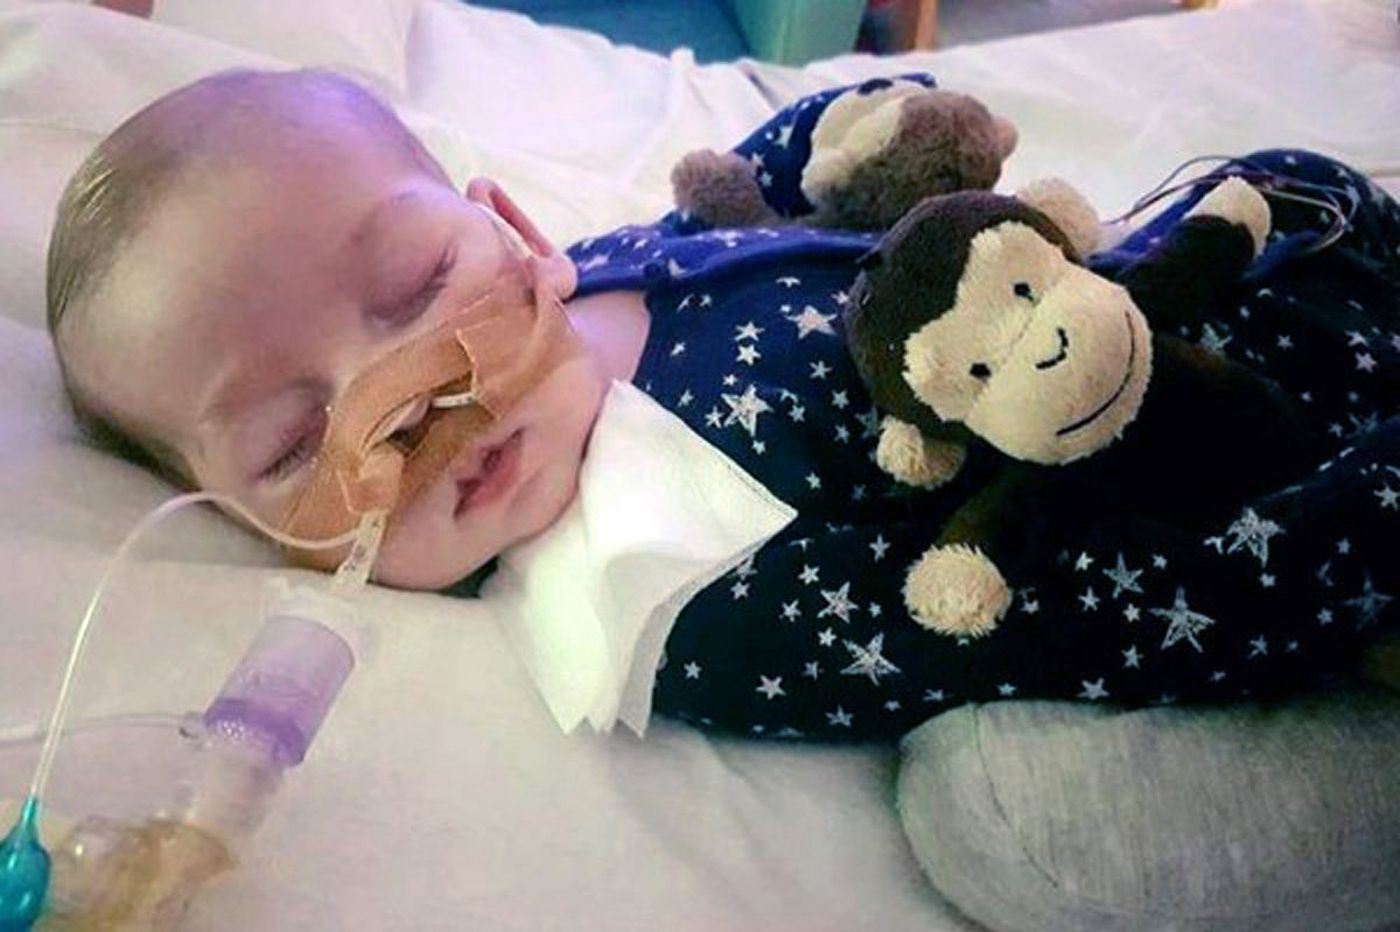 Parents should decide fate of terminally ill son, not courts